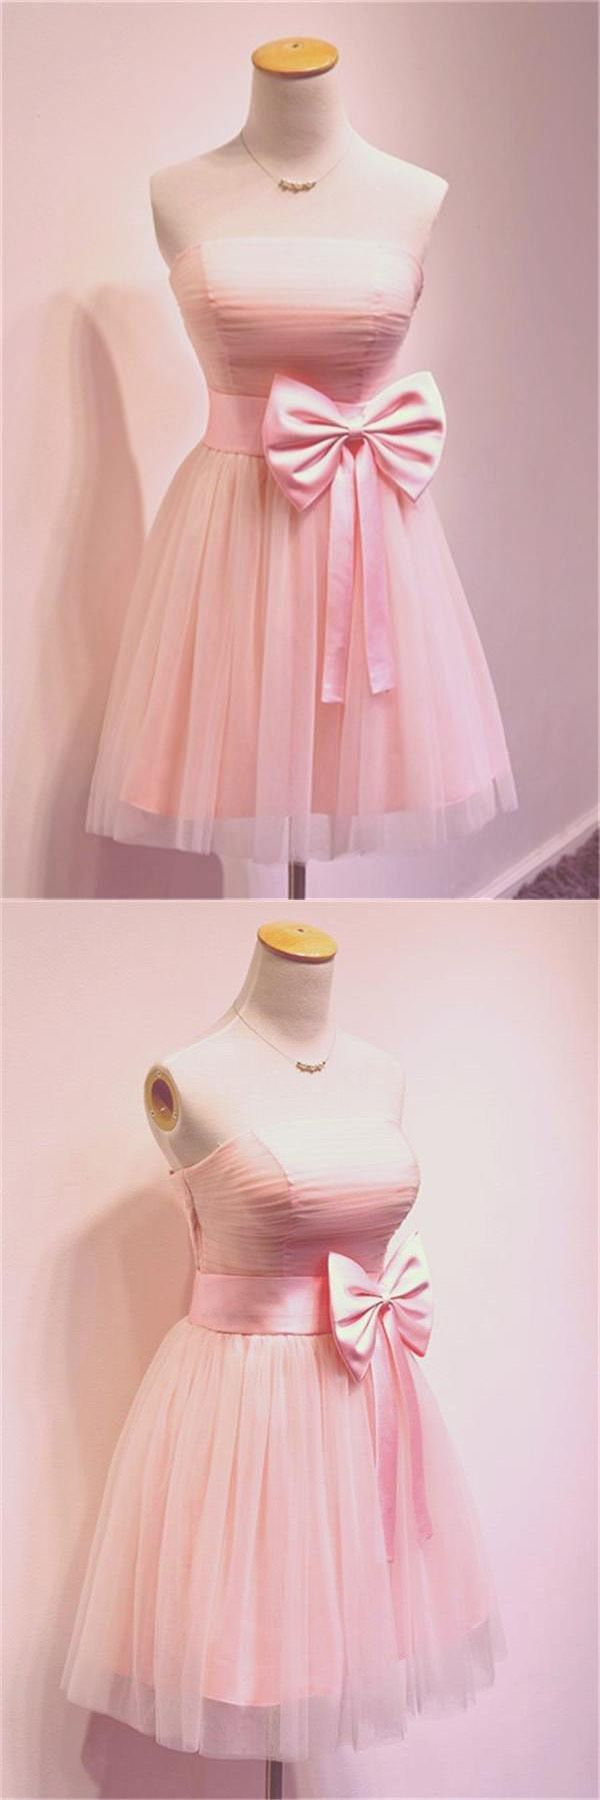 Girly simple short pink strapless homecoming dresses pg